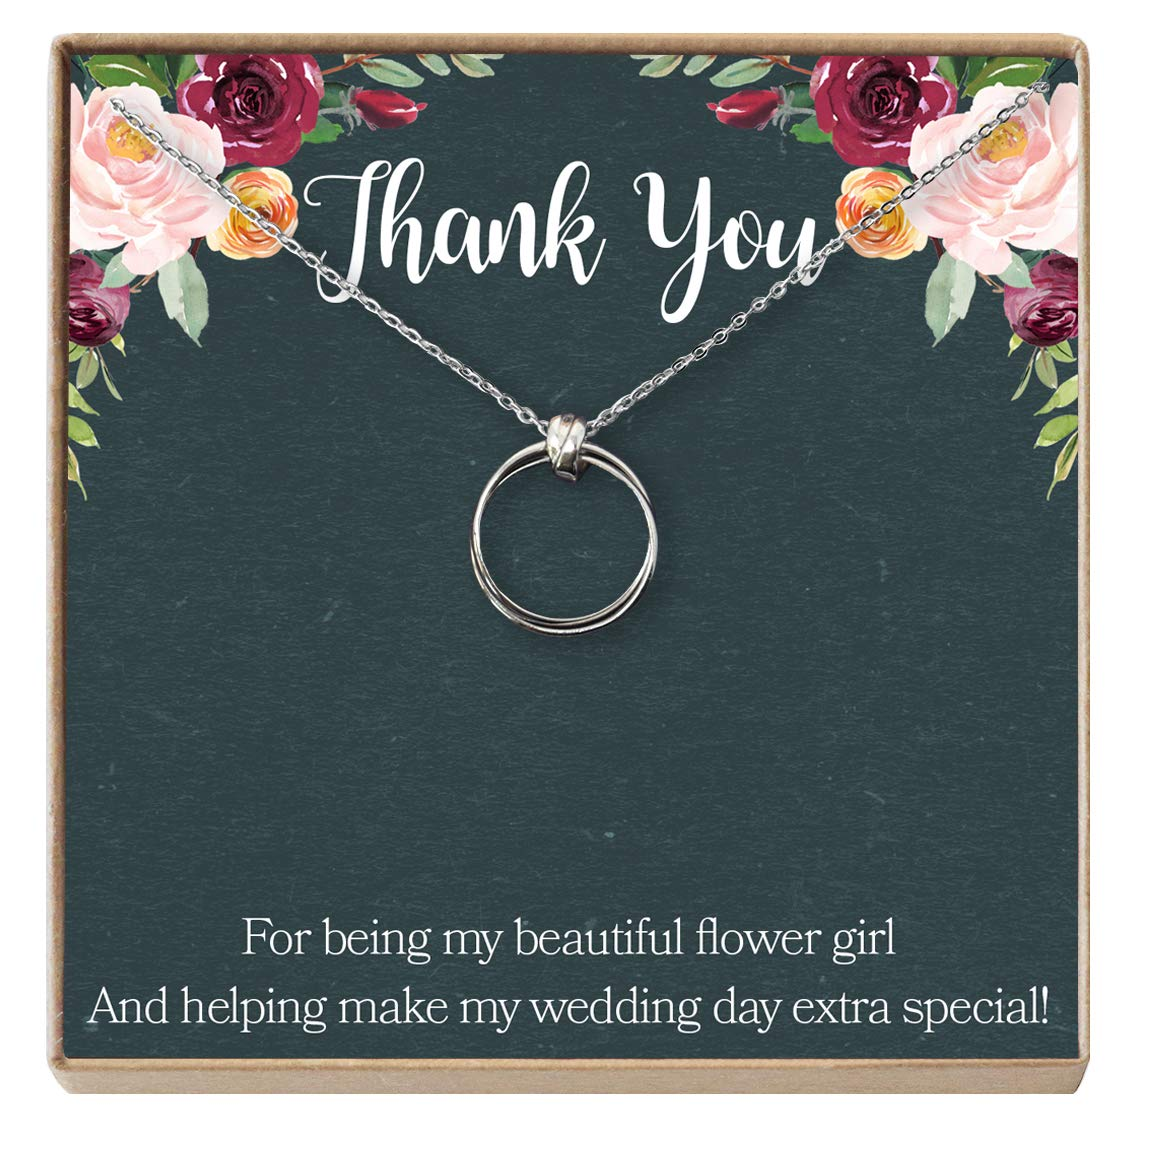 Wedding Party Gift Thank You Gift Dear Ava Flower Girl Gift Necklace: Bridal Party Gift 2 Linked Circles